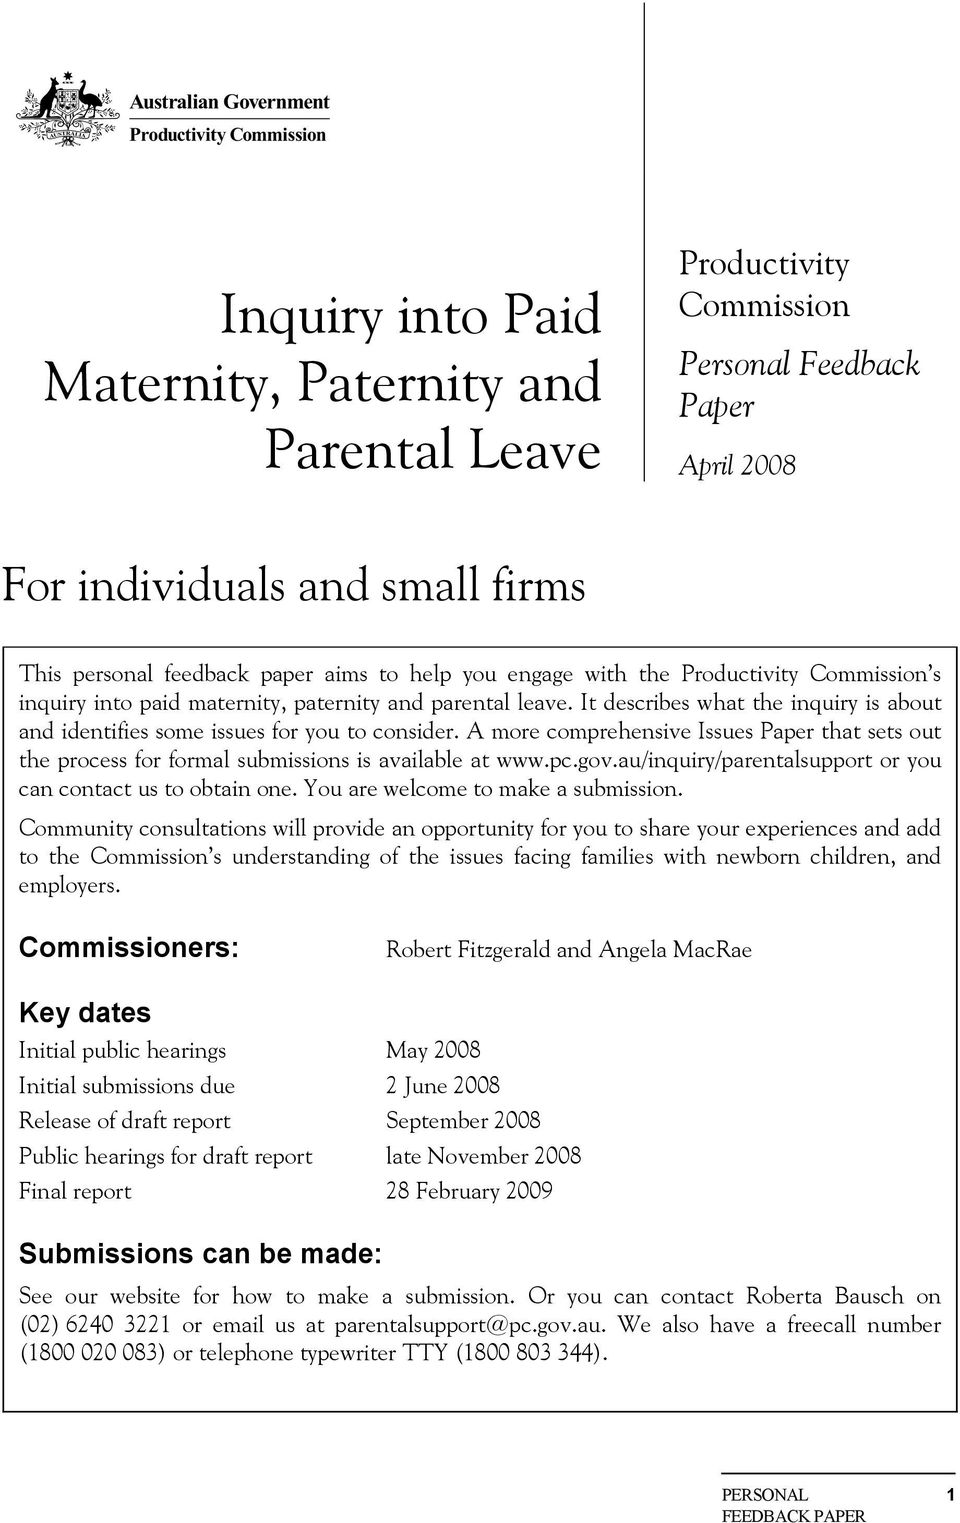 A more comprehensive Issues Paper that sets out the process for formal submissions is available at www.pc.gov.au/inquiry/parentalsupport or you can contact us to obtain one.